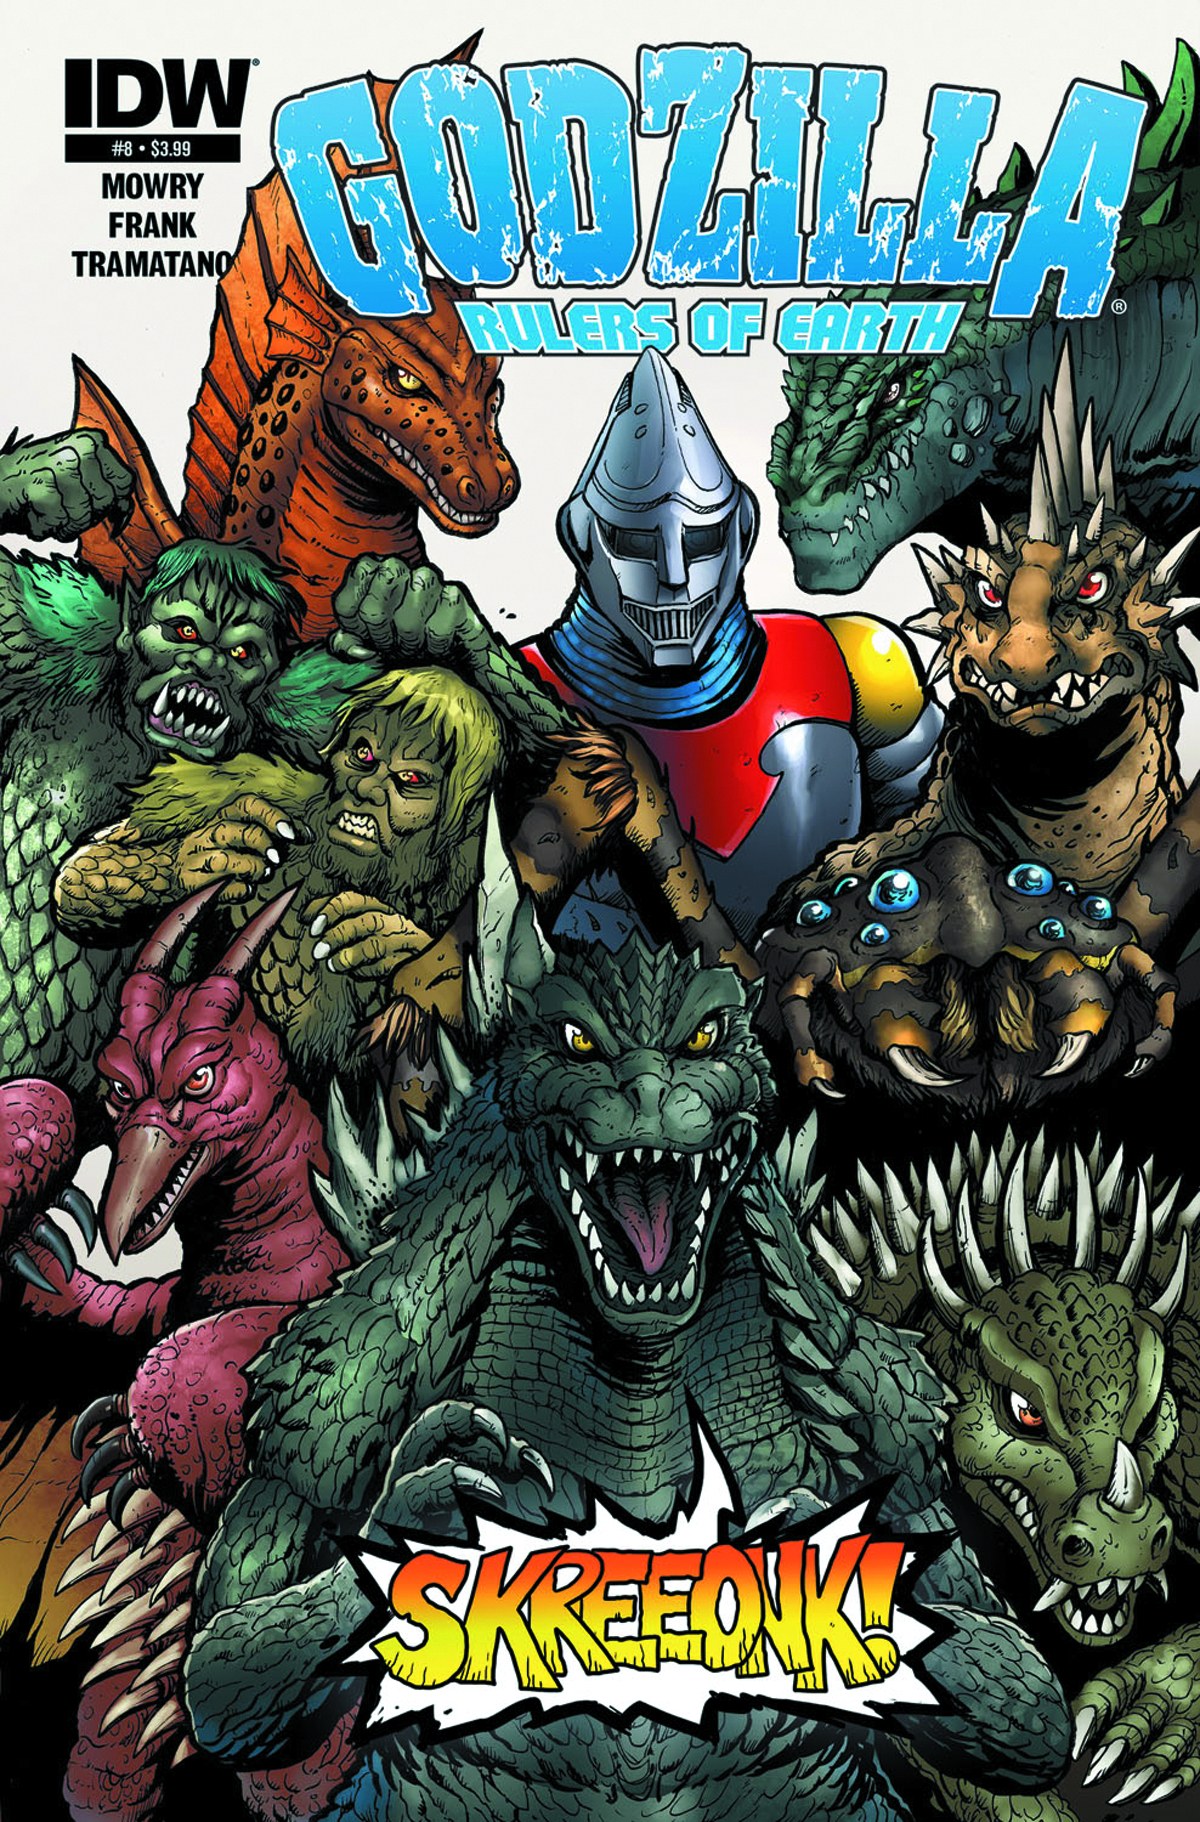 GODZILLA RULERS OF THE EARTH #8